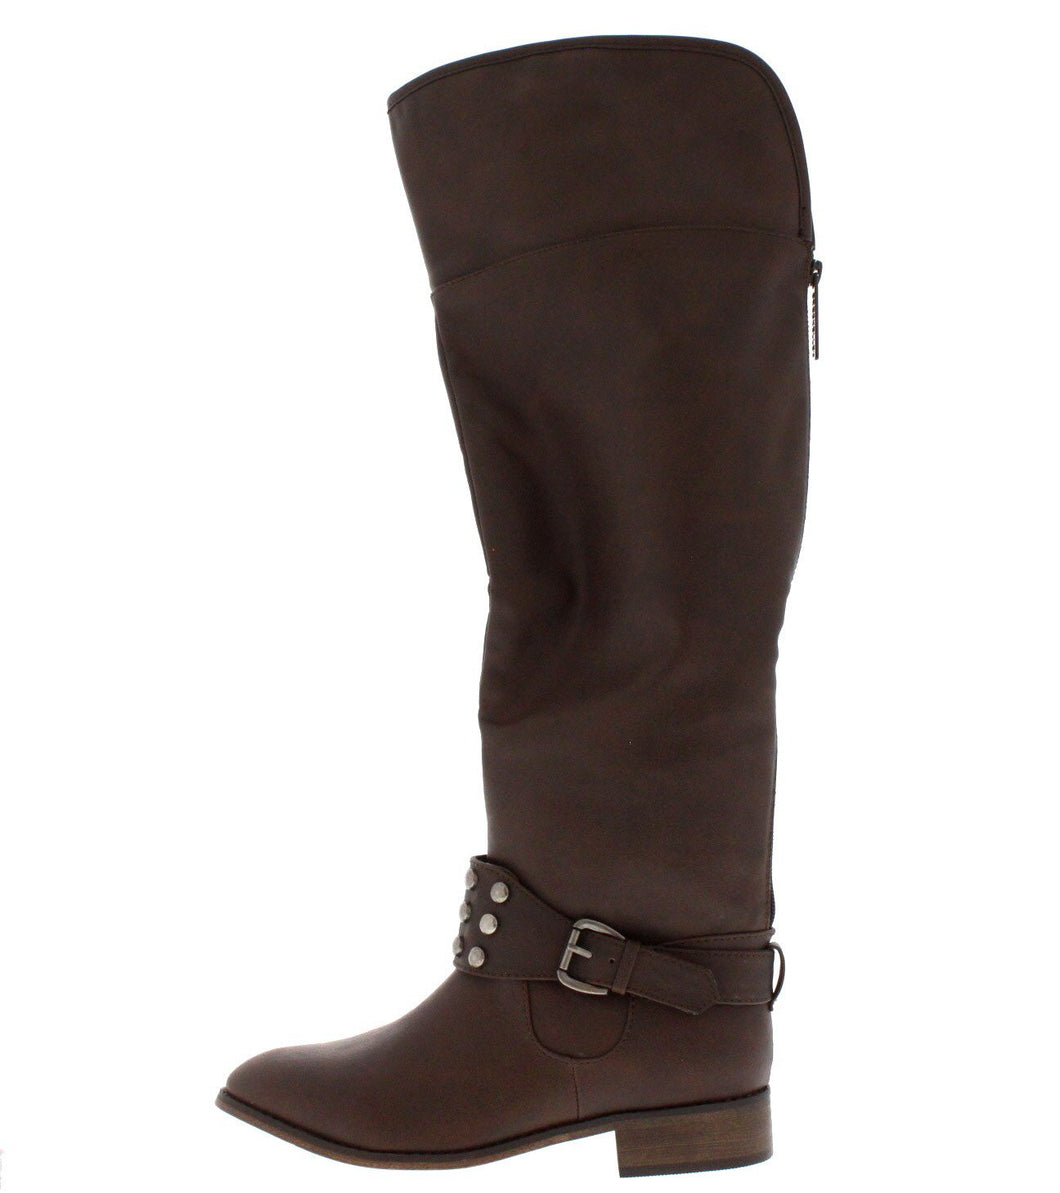 Herley11 Brown Studded Riding Boot